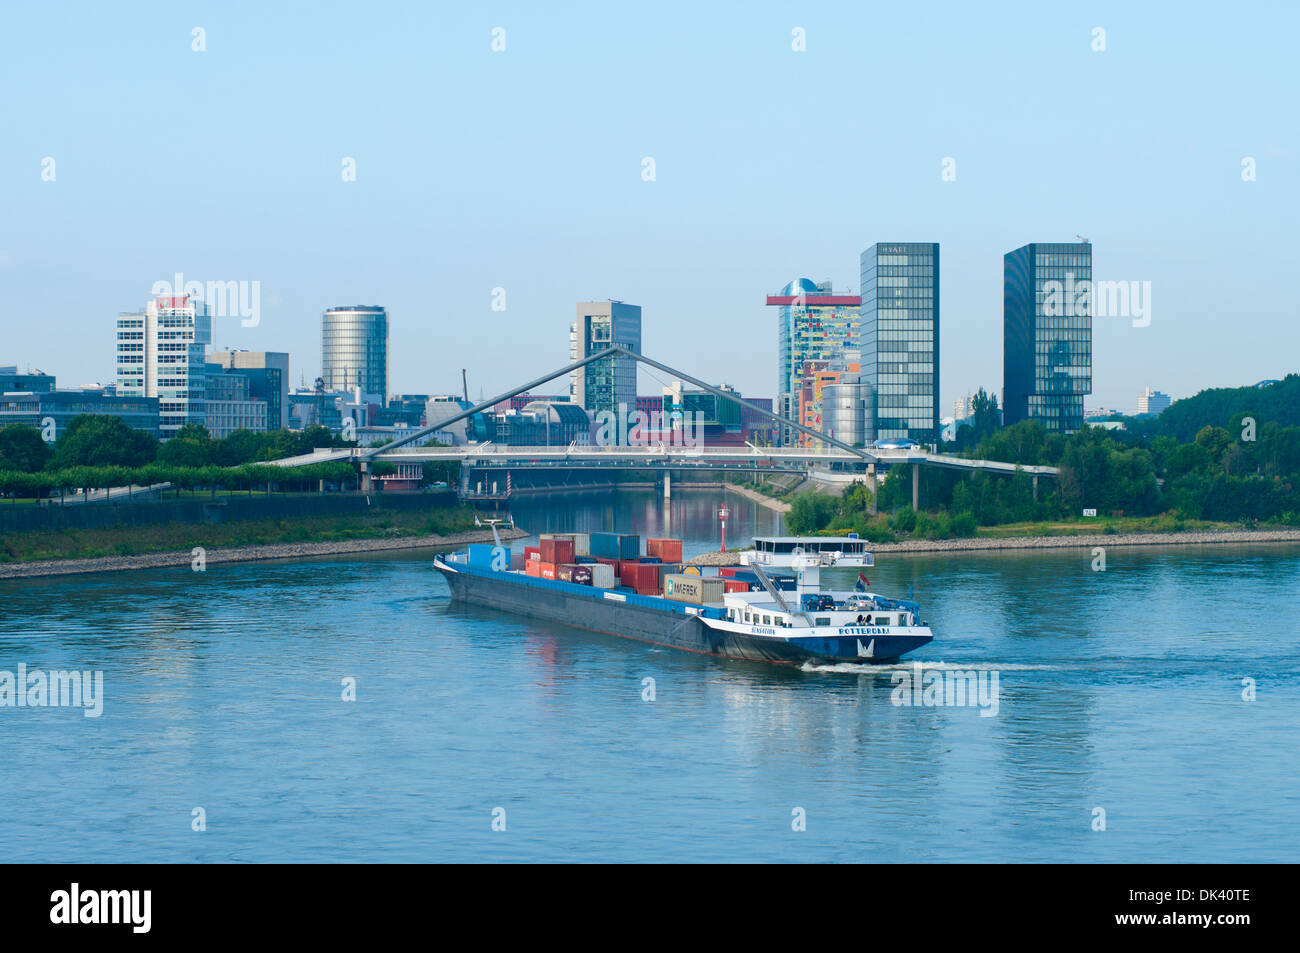 dutch container ship entering the media harbor in dusseldorf, germany Stock Photo